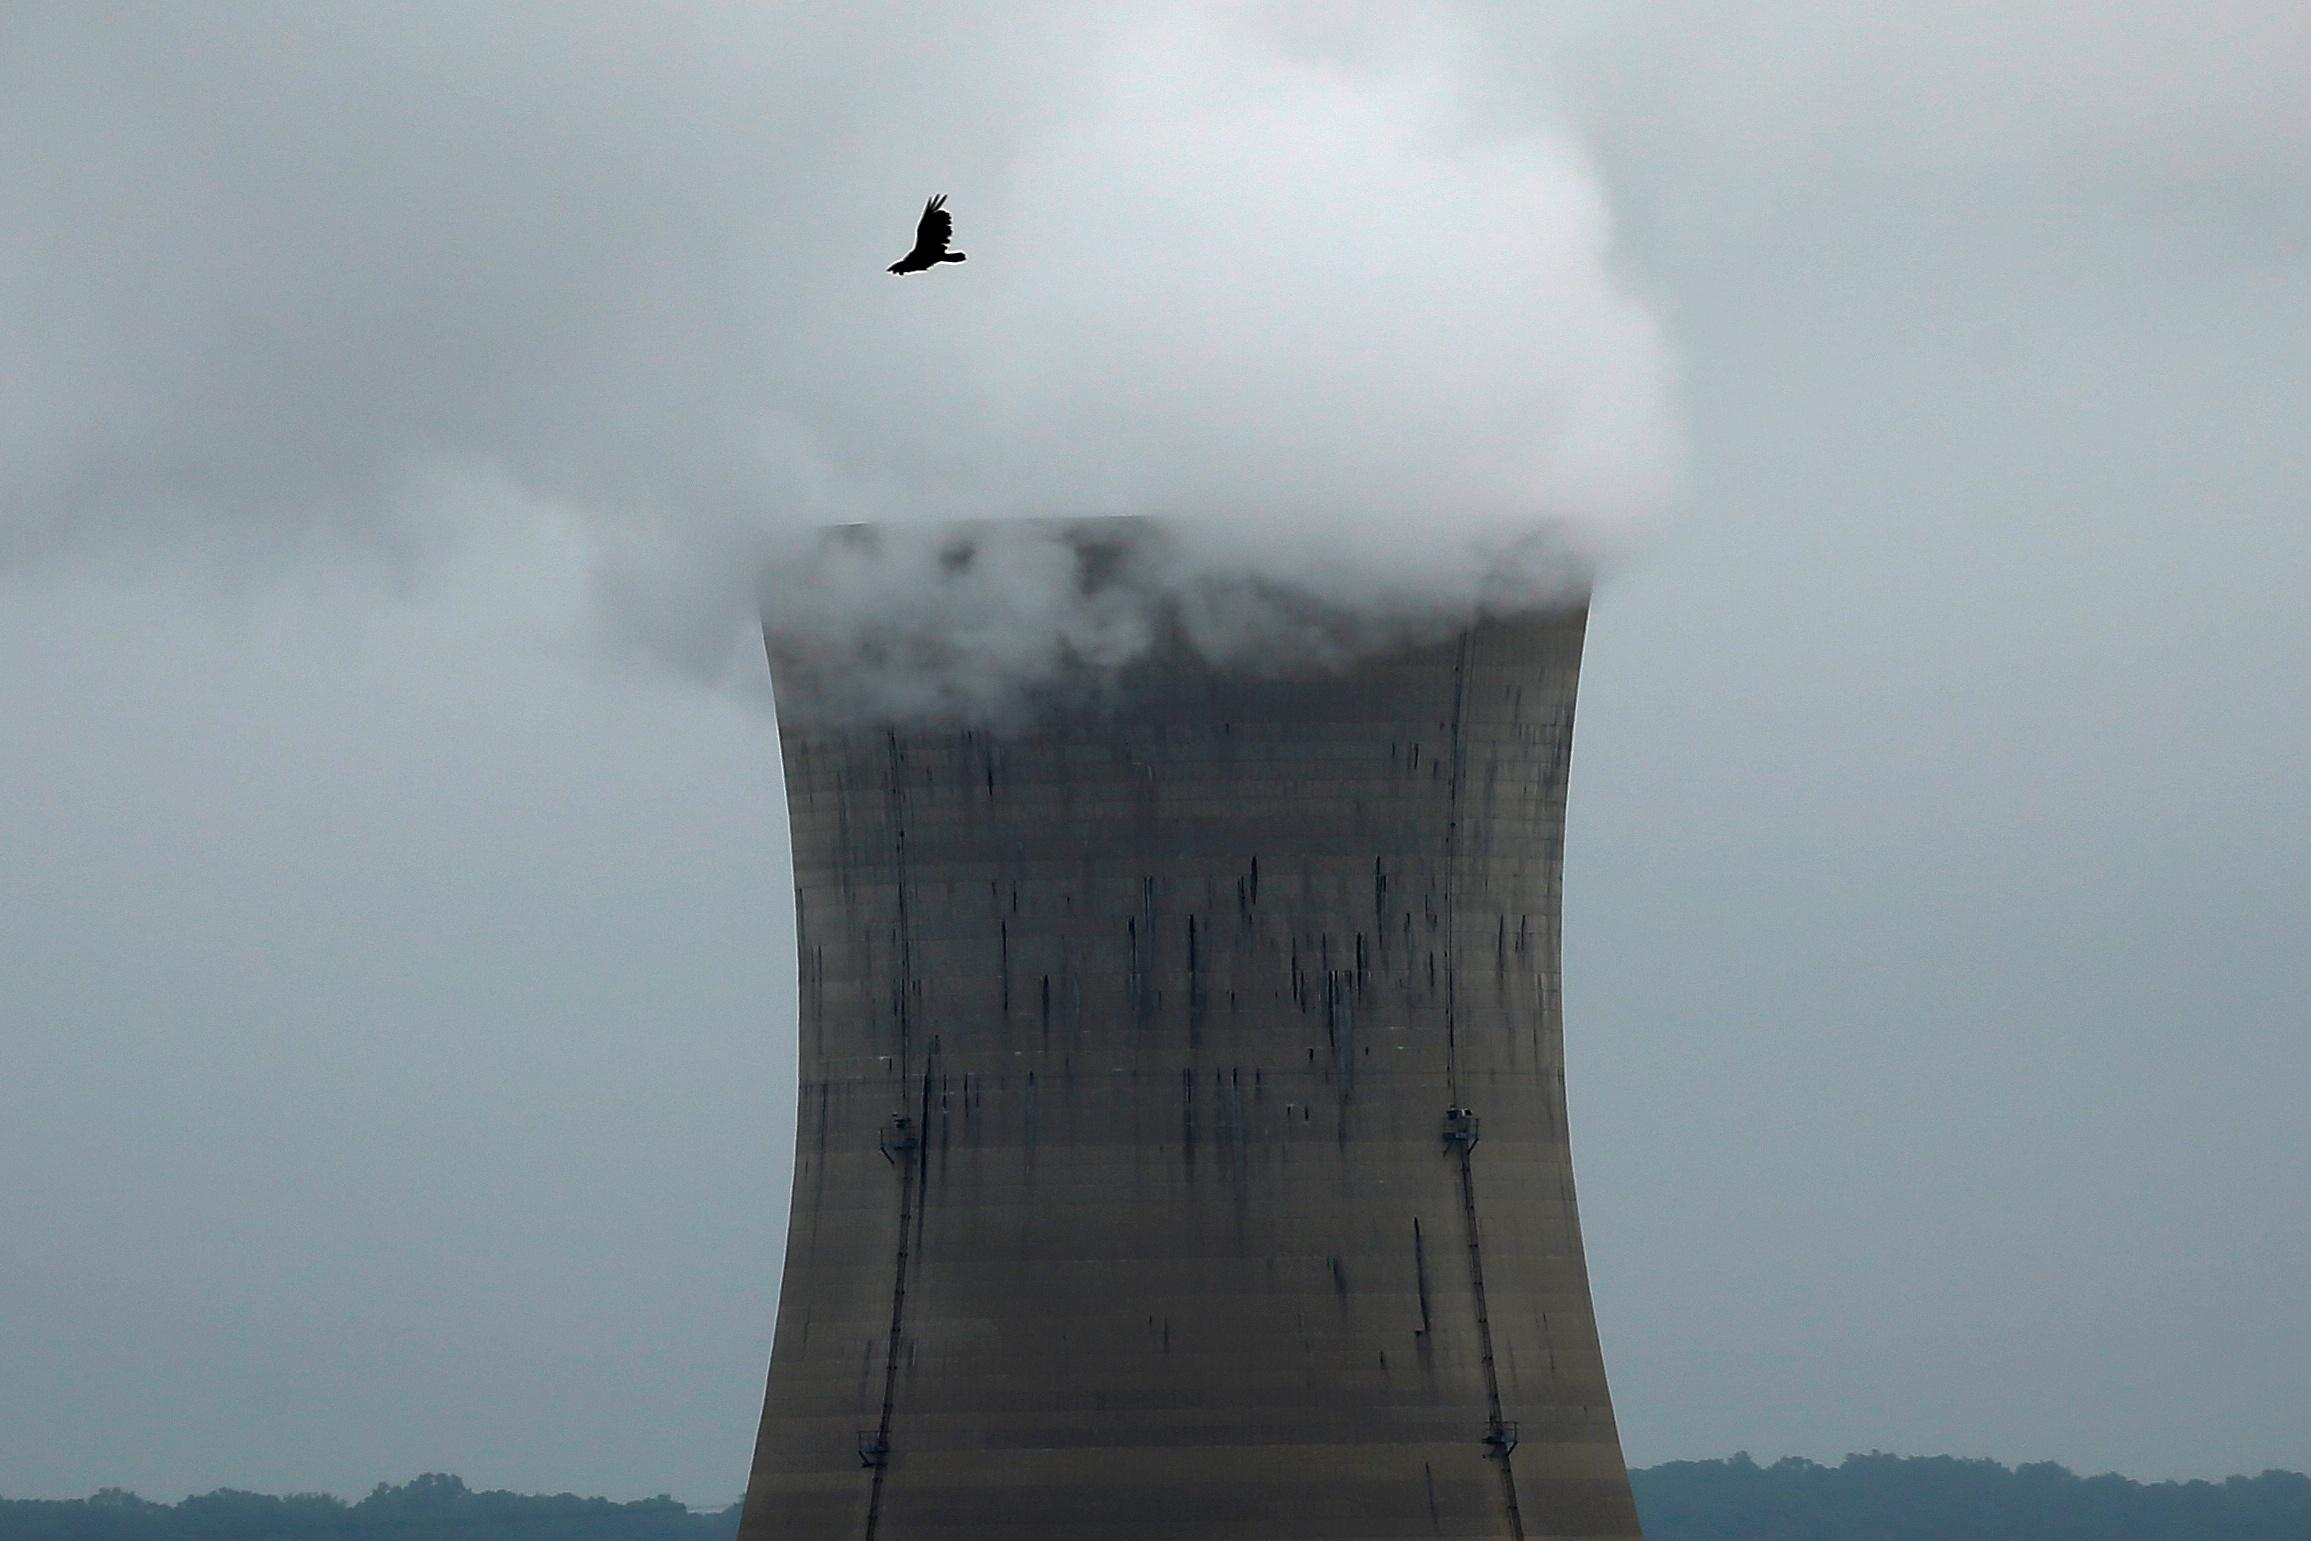 Should states rely on nuclear to combat climate change?